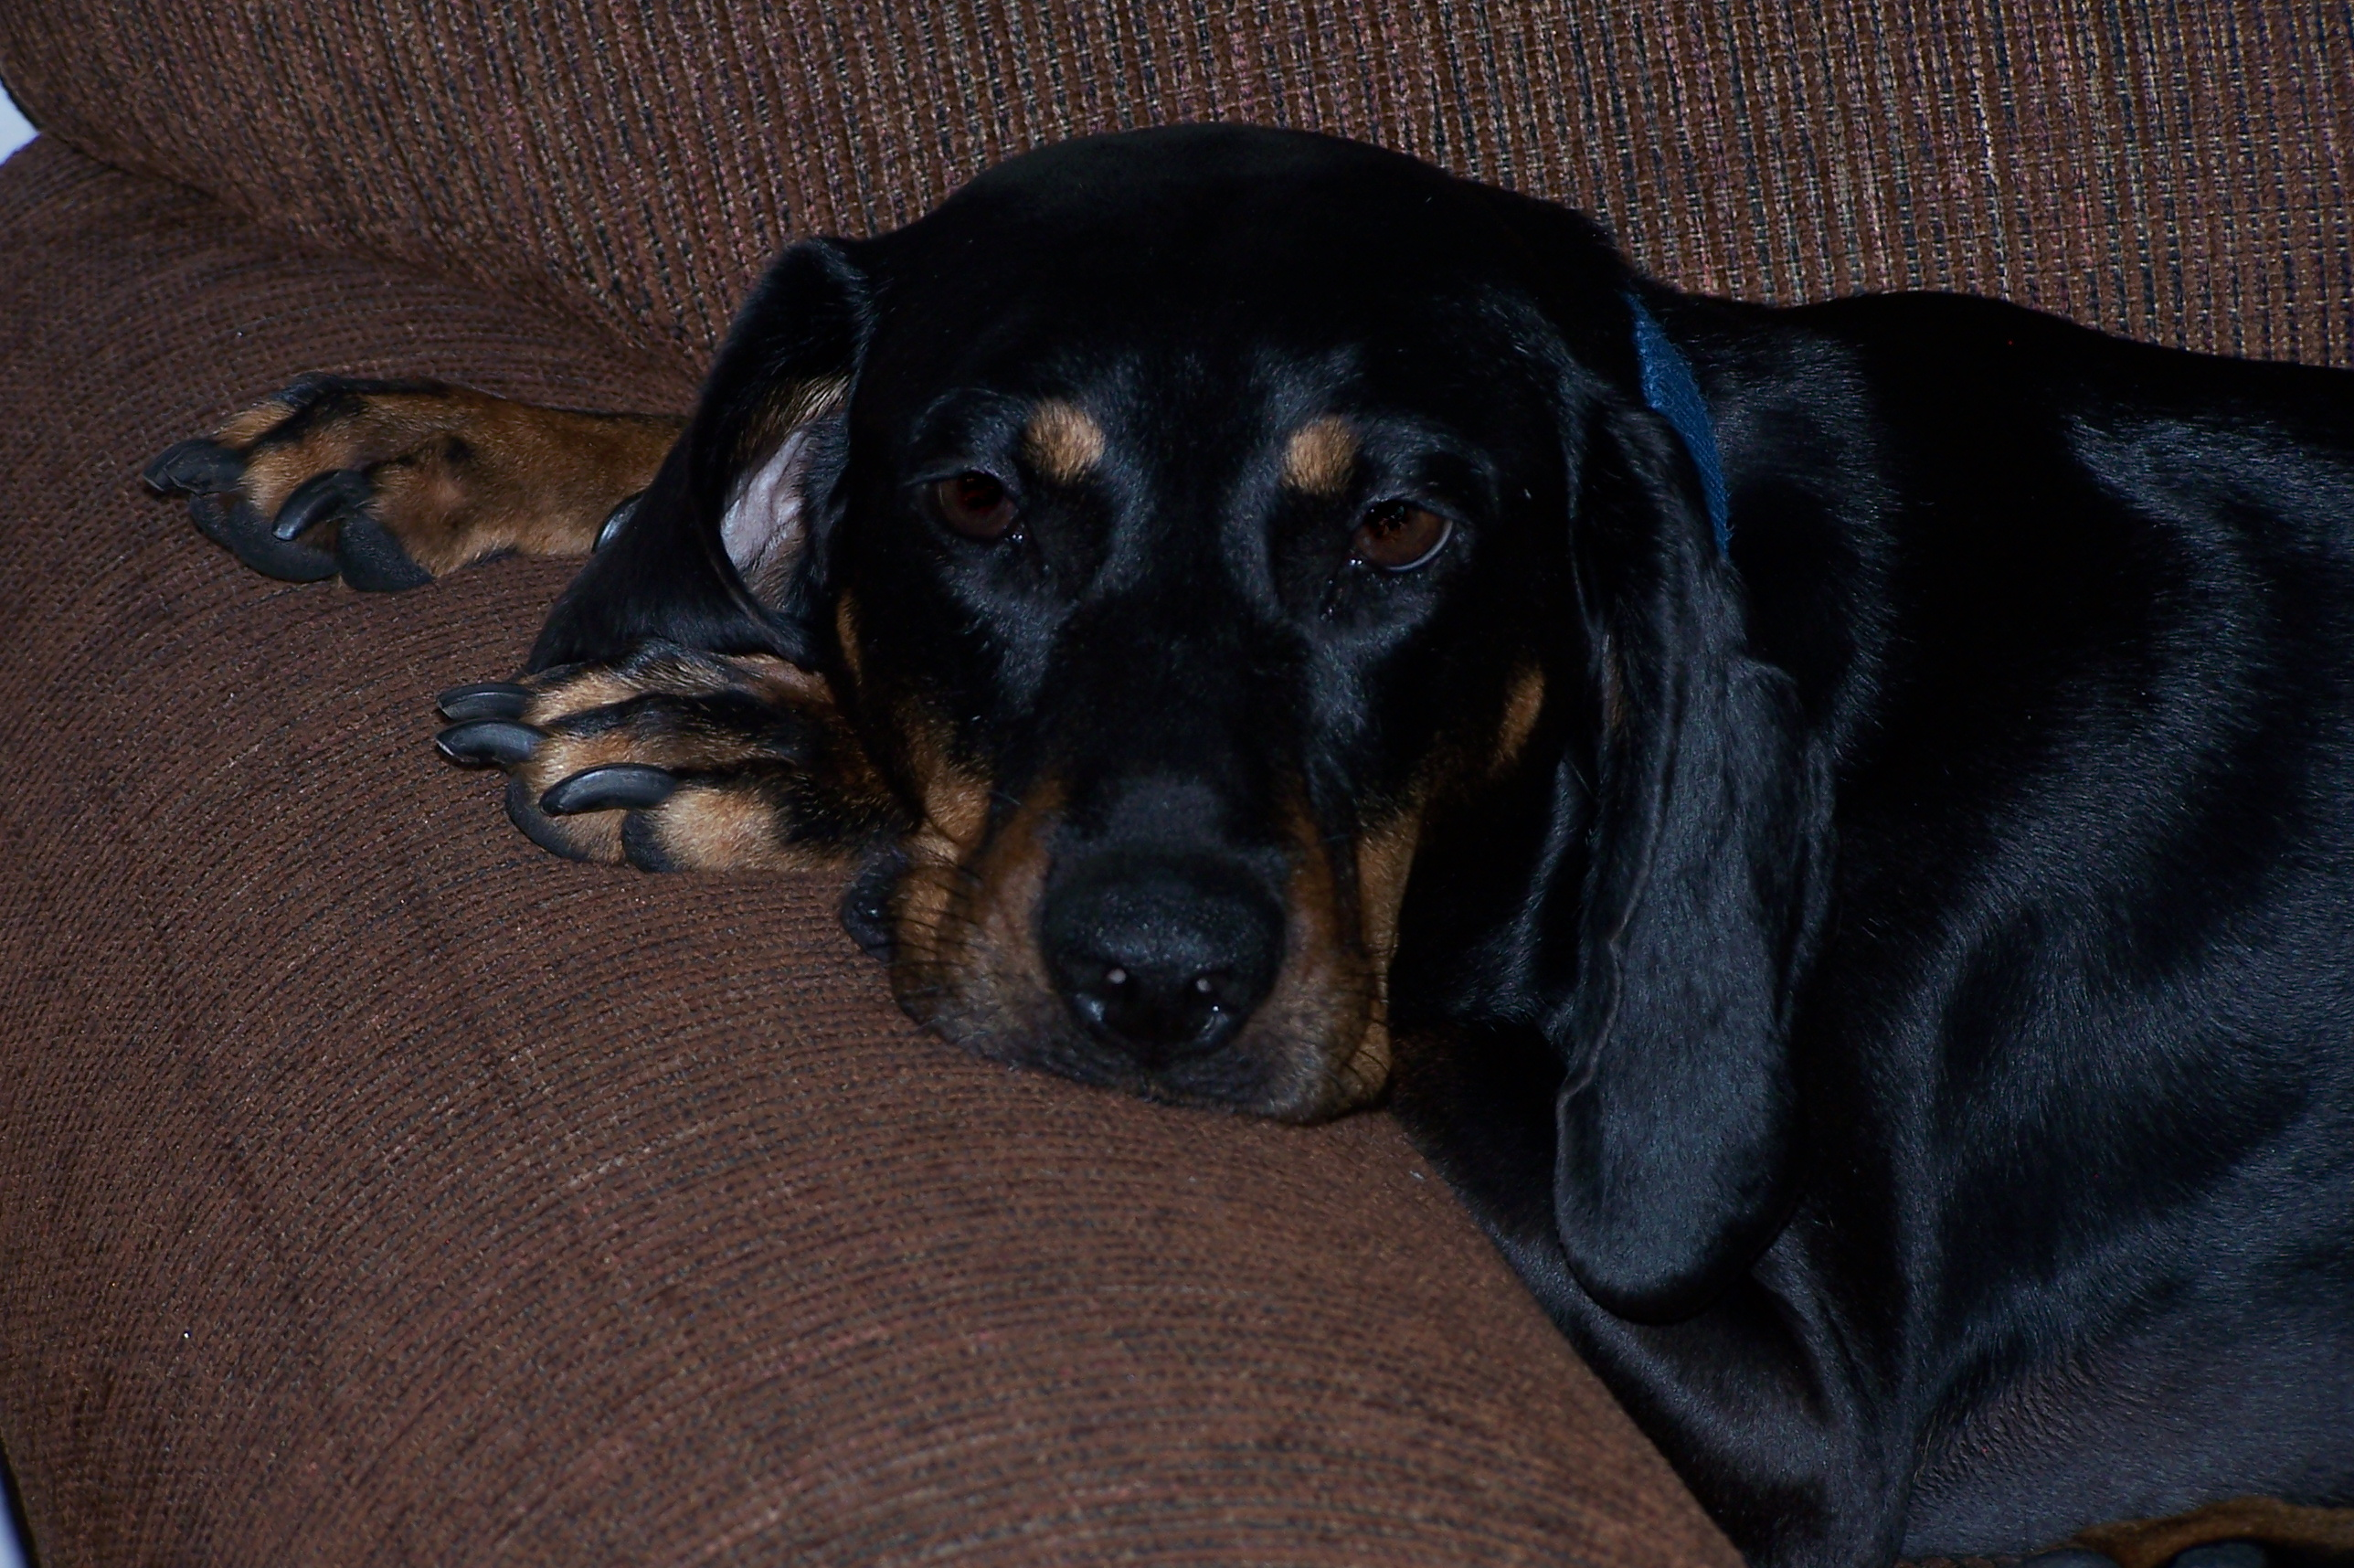 Abigail resting on the couch